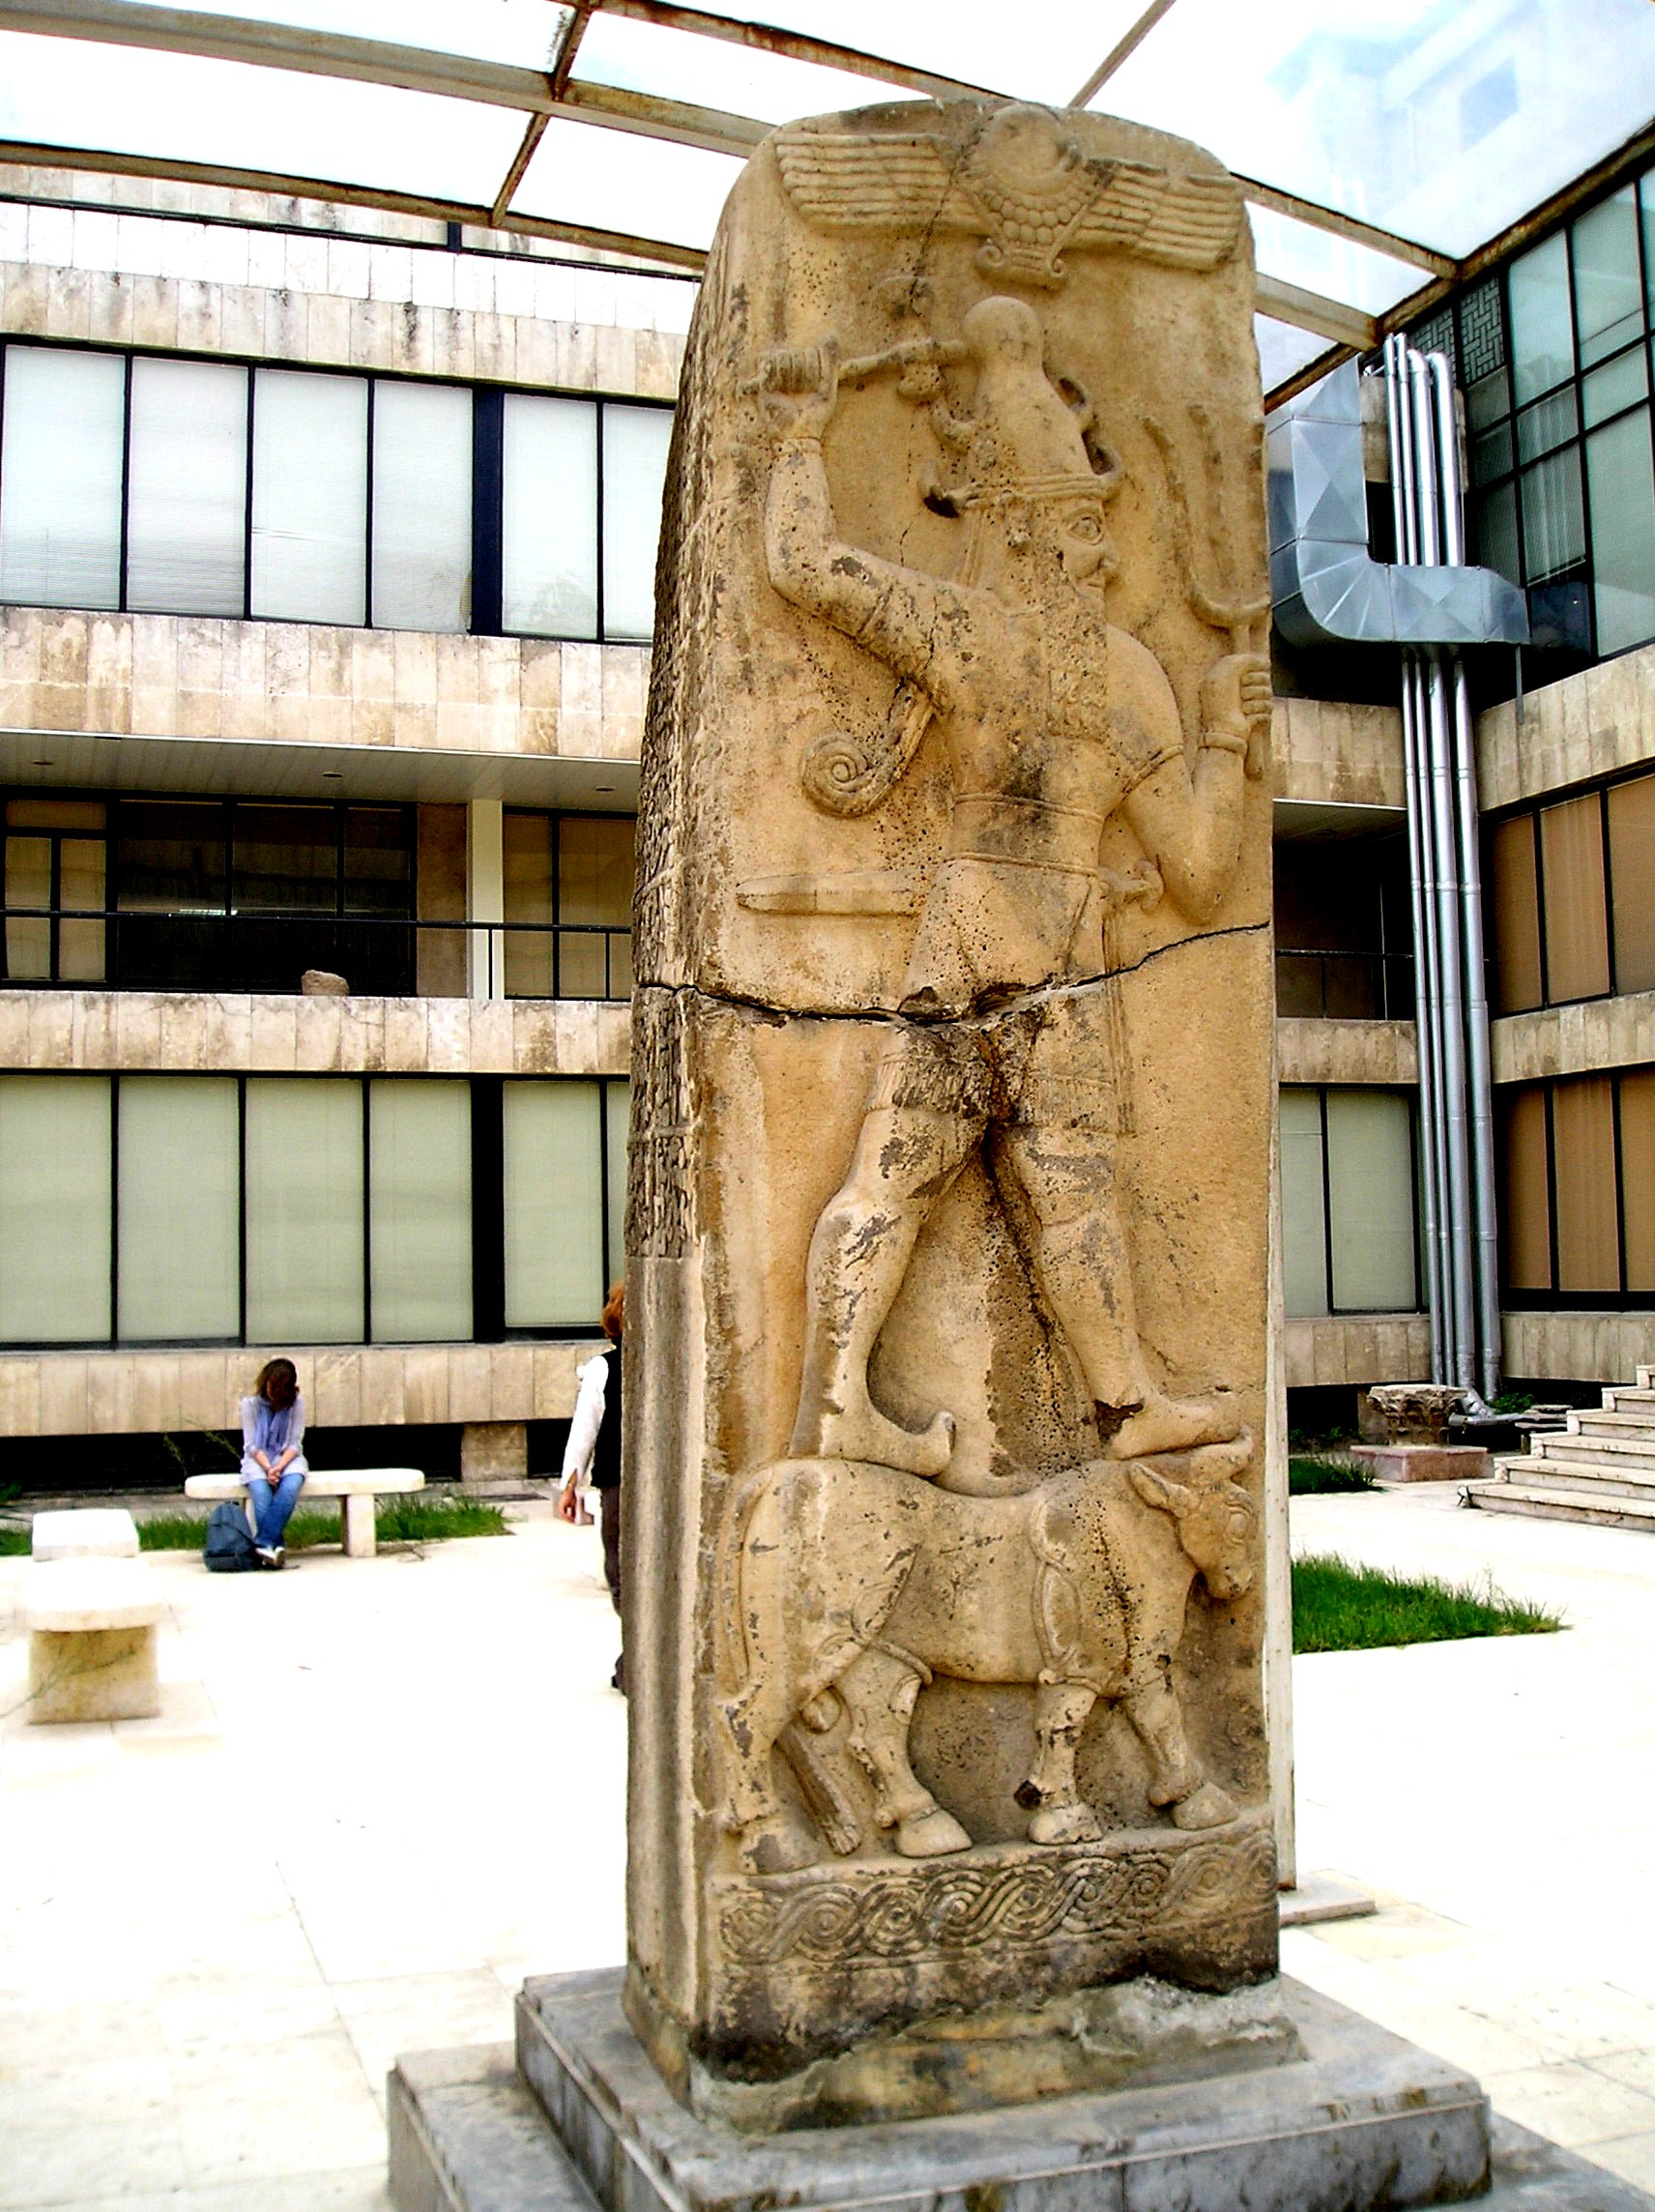 Adad atop his zodiac symbol of Taurus the Bull, artifact in Aleppo, now destroyed by Radical Islam